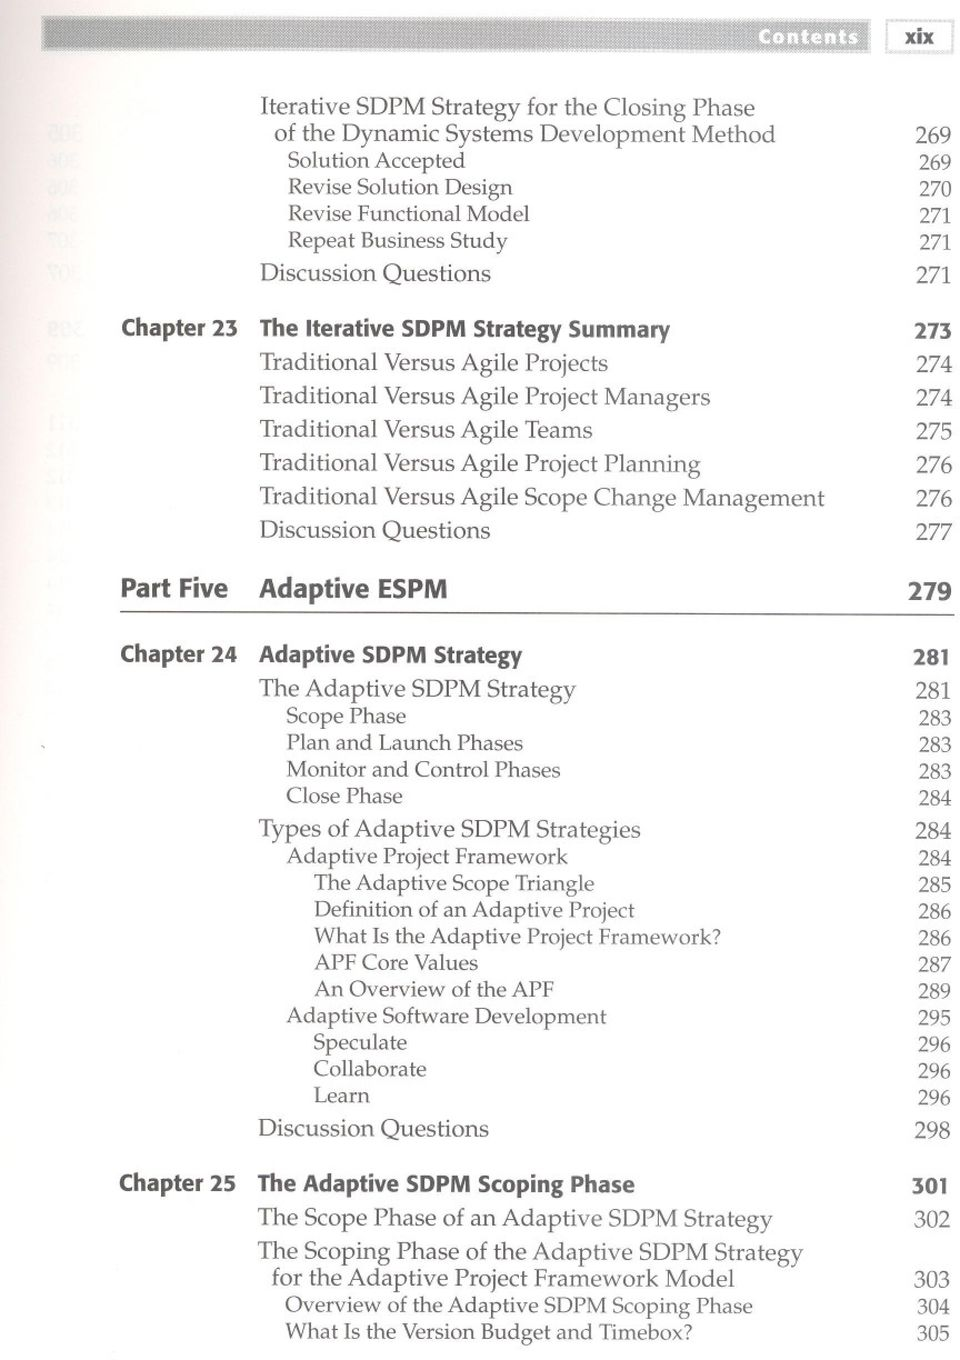 Project Planning 276 Traditional Versus Agile Scope Change Management 276 277 Part Five Adaptive ESPM 279 Chapter 24 Adaptive SDPM Strategy 281 The Adaptive SDPM Strategy 281 Scope Phase 283 Plan and